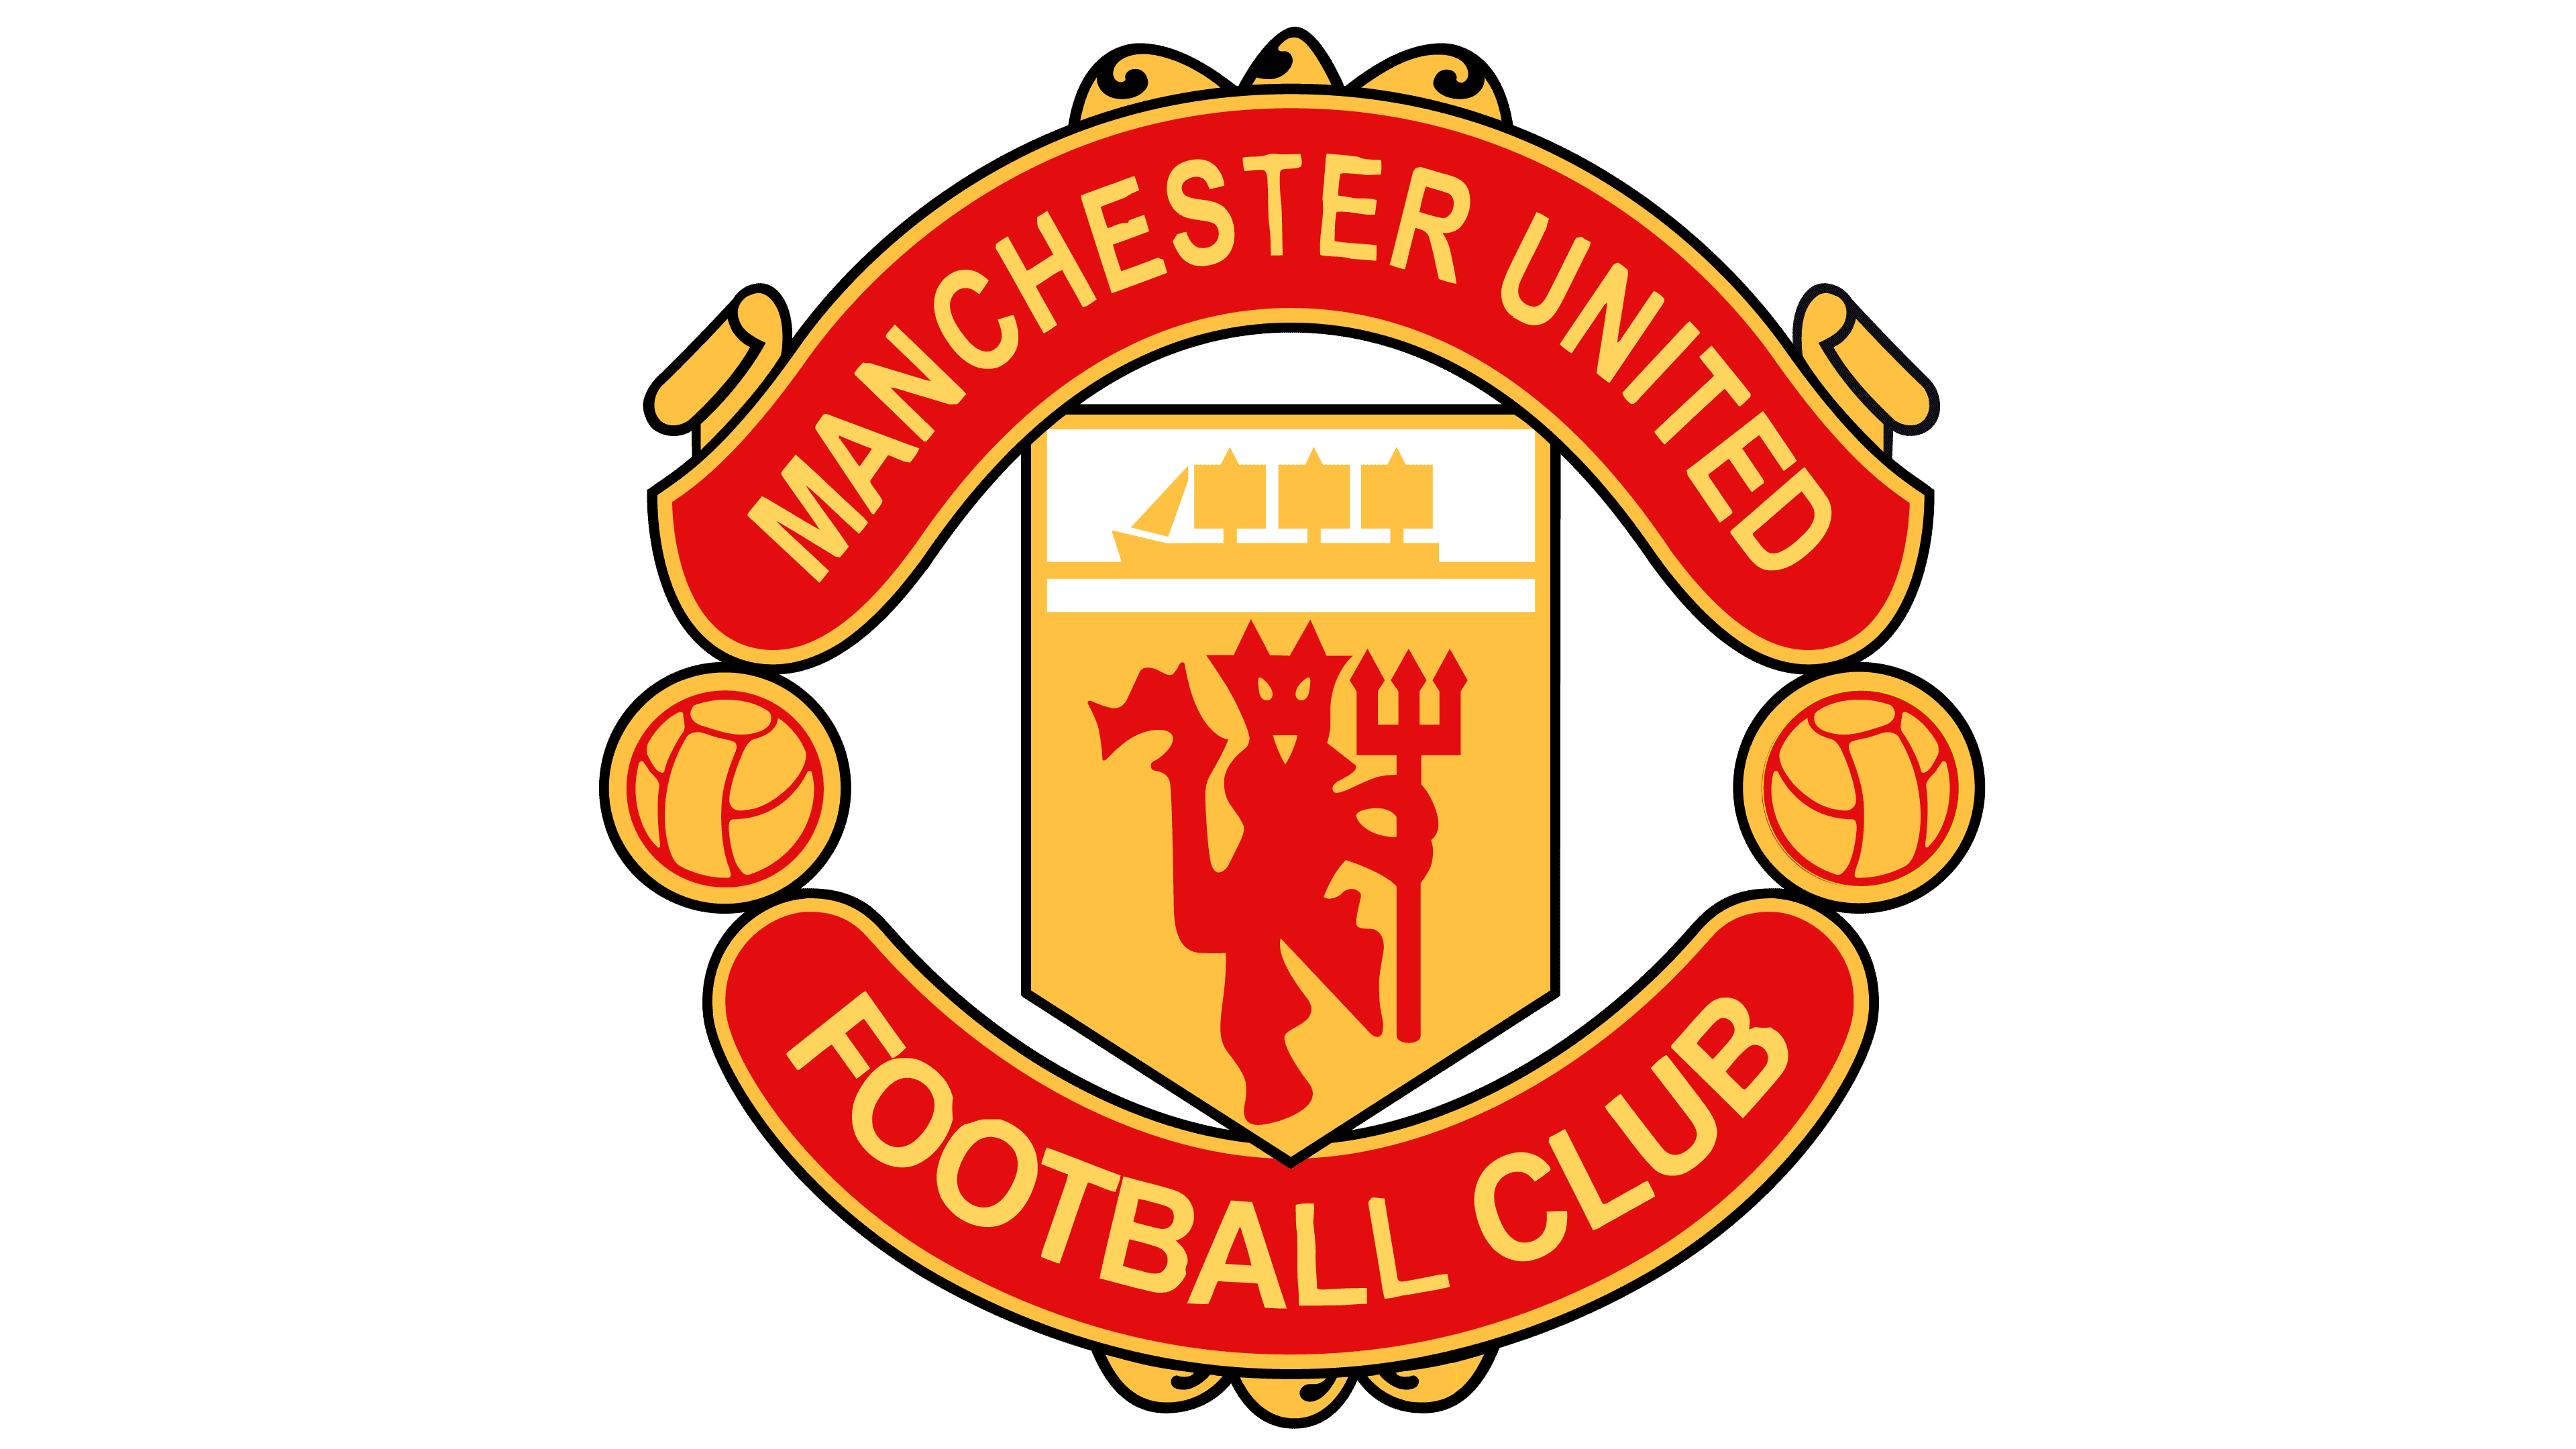 Manchester United Logo History The Most Famous Brands And Company Logos In The World